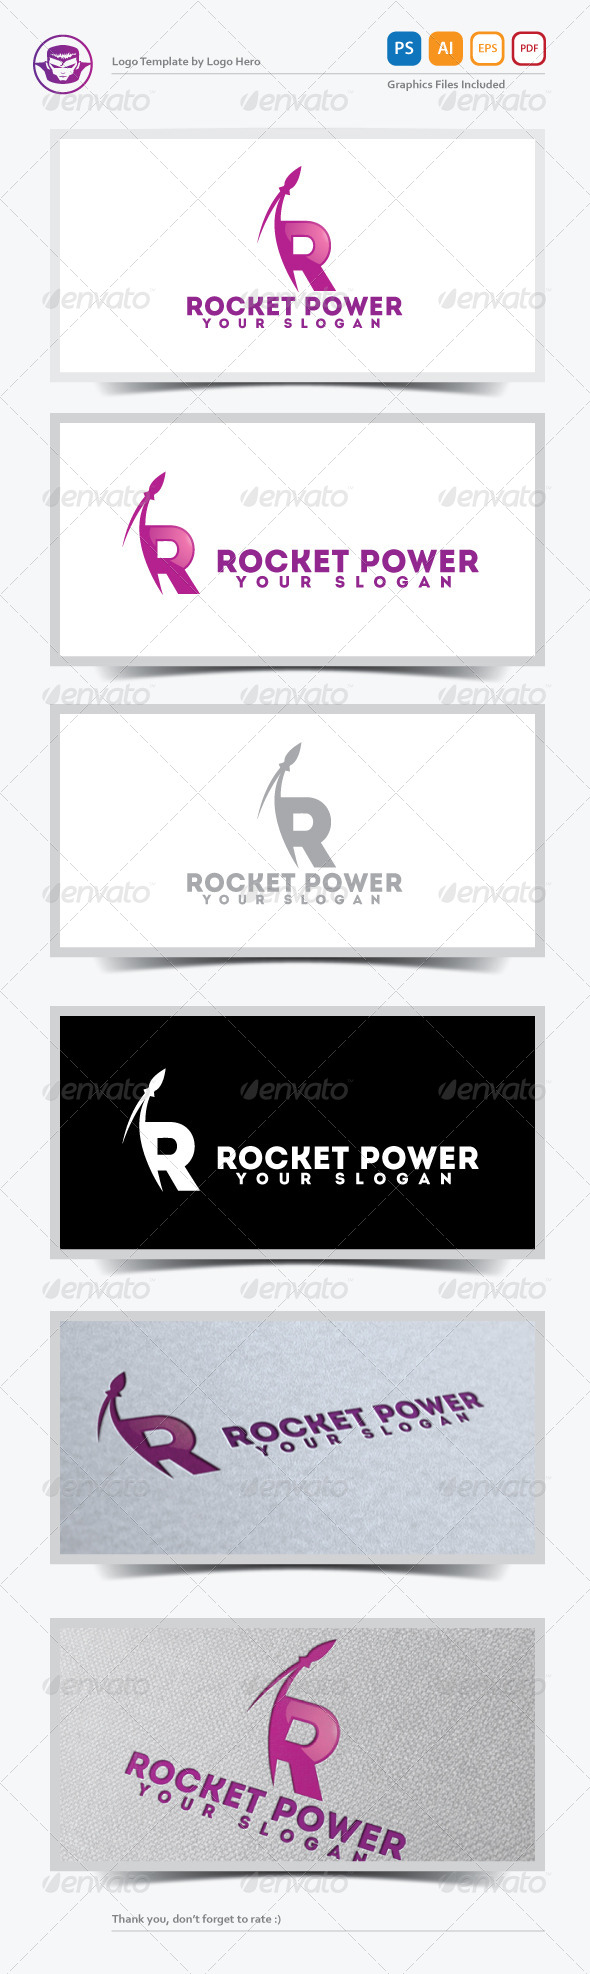 GraphicRiver Rocket Power Logo Template 5212348